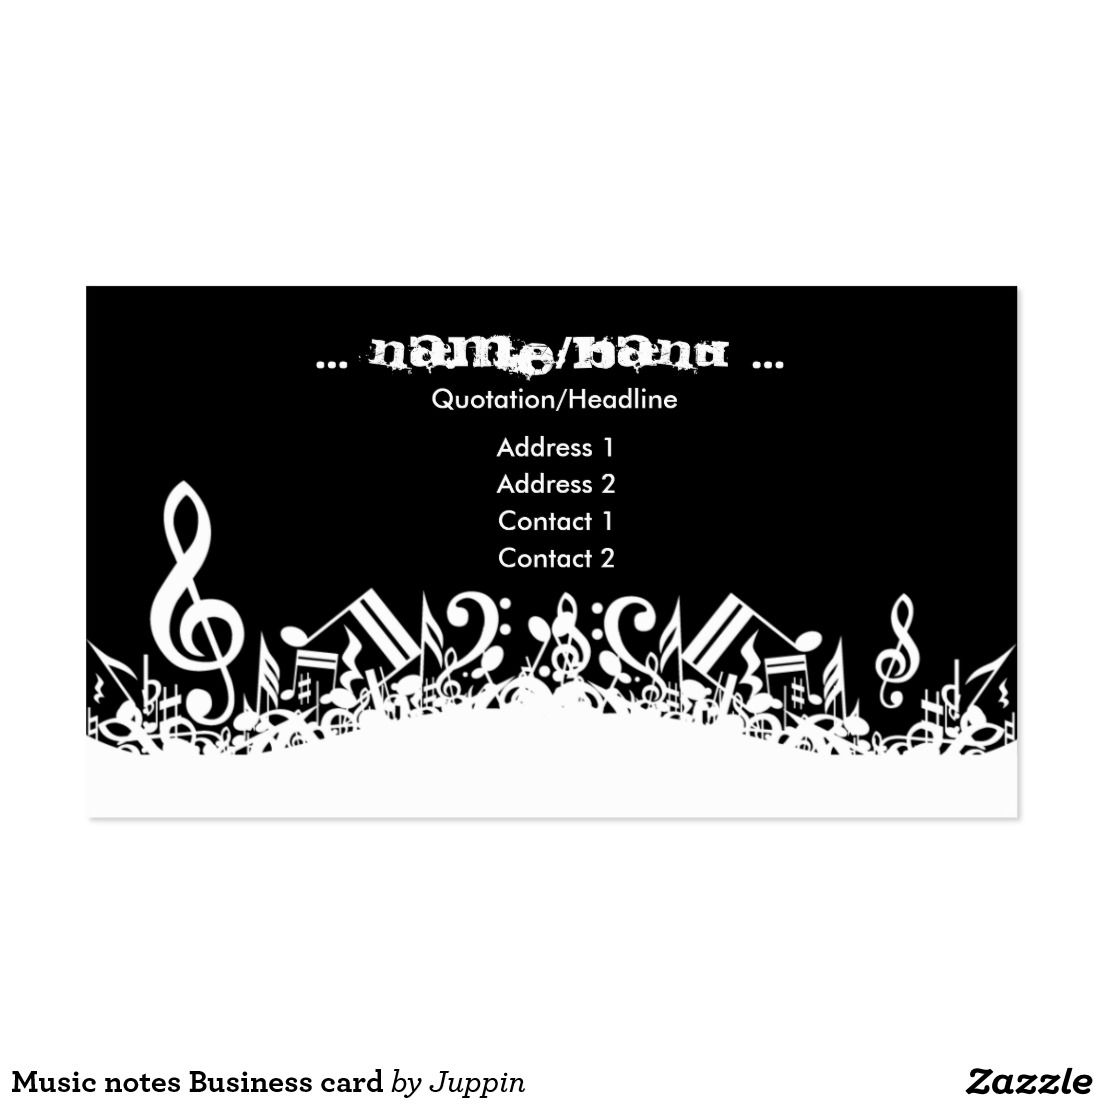 Music notes Business card | Pinterest | Music notes, Business cards ...